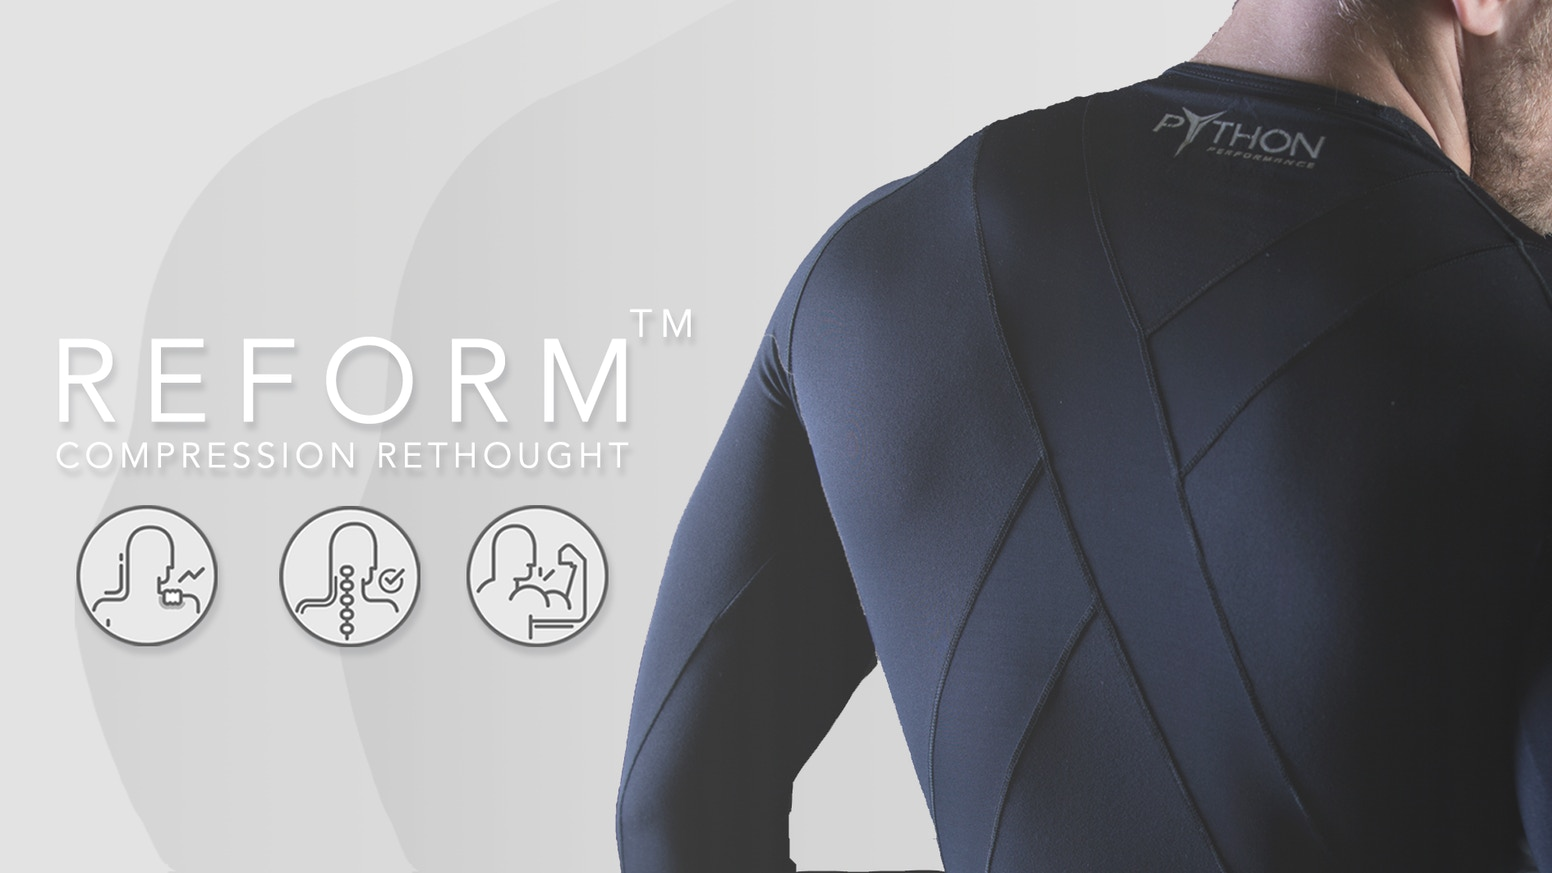 Intelligently designed to provide stabilization, increased performance, and postural support never seen before in compression wear.